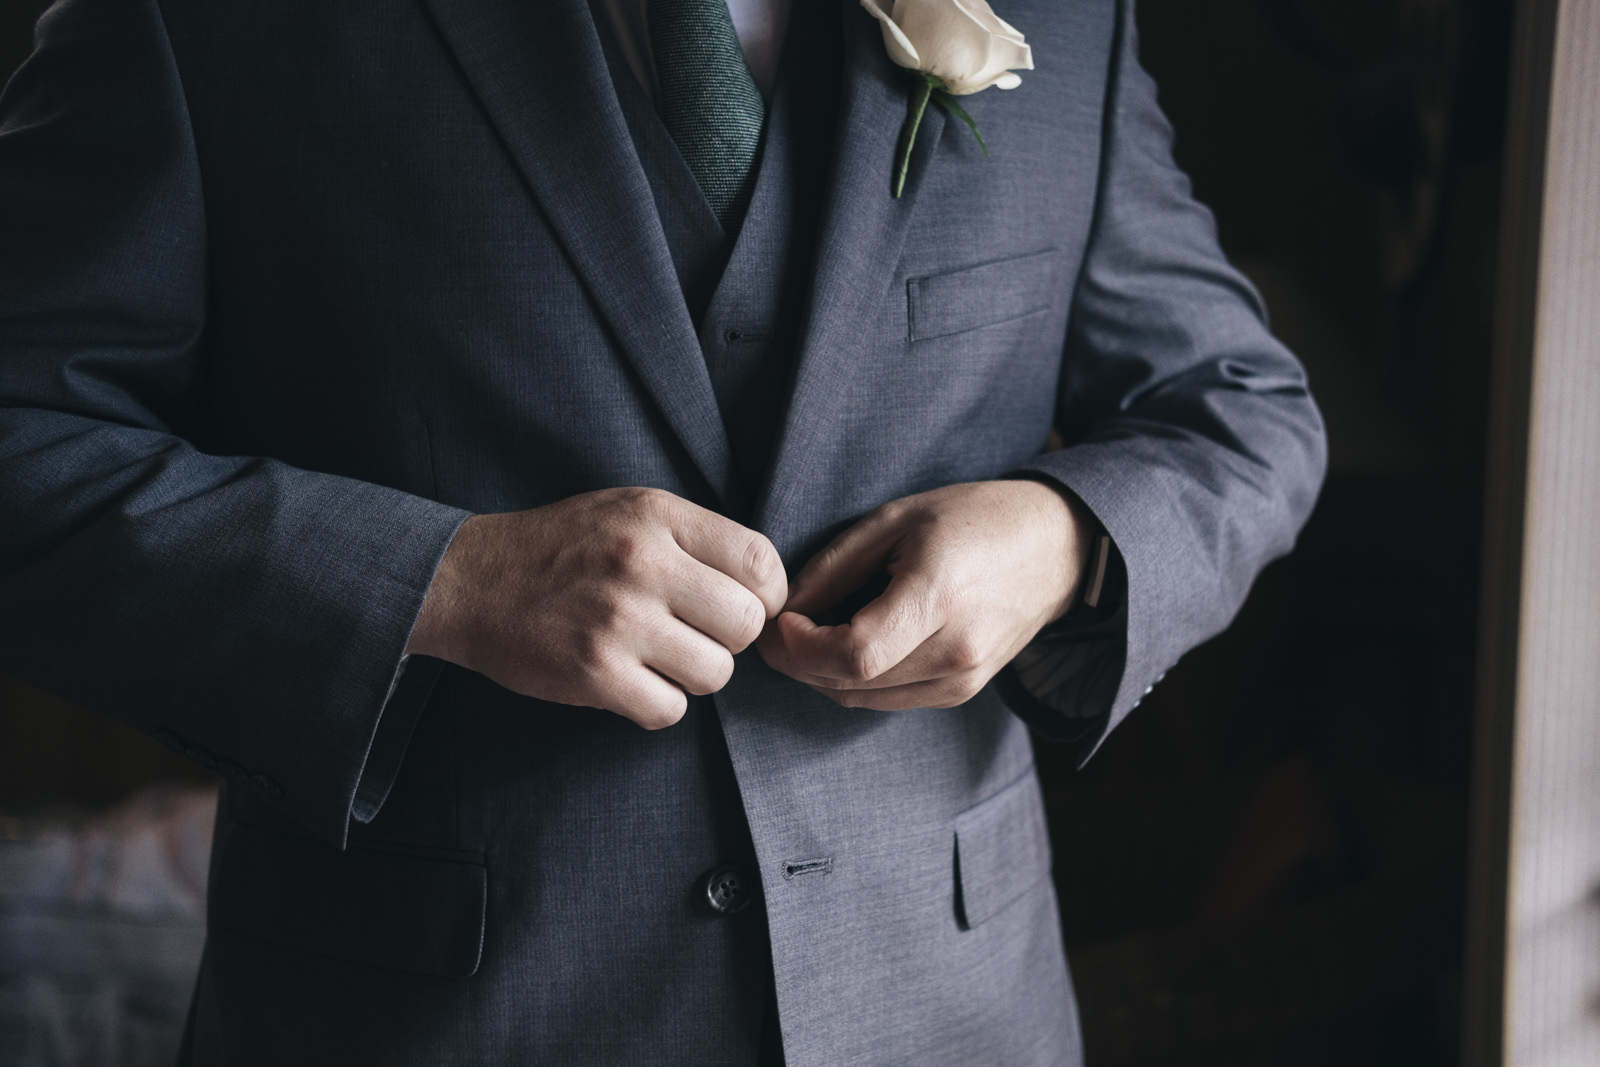 Groom buttons up his suite before his unique wedding ceremony at the Toledo Zoo